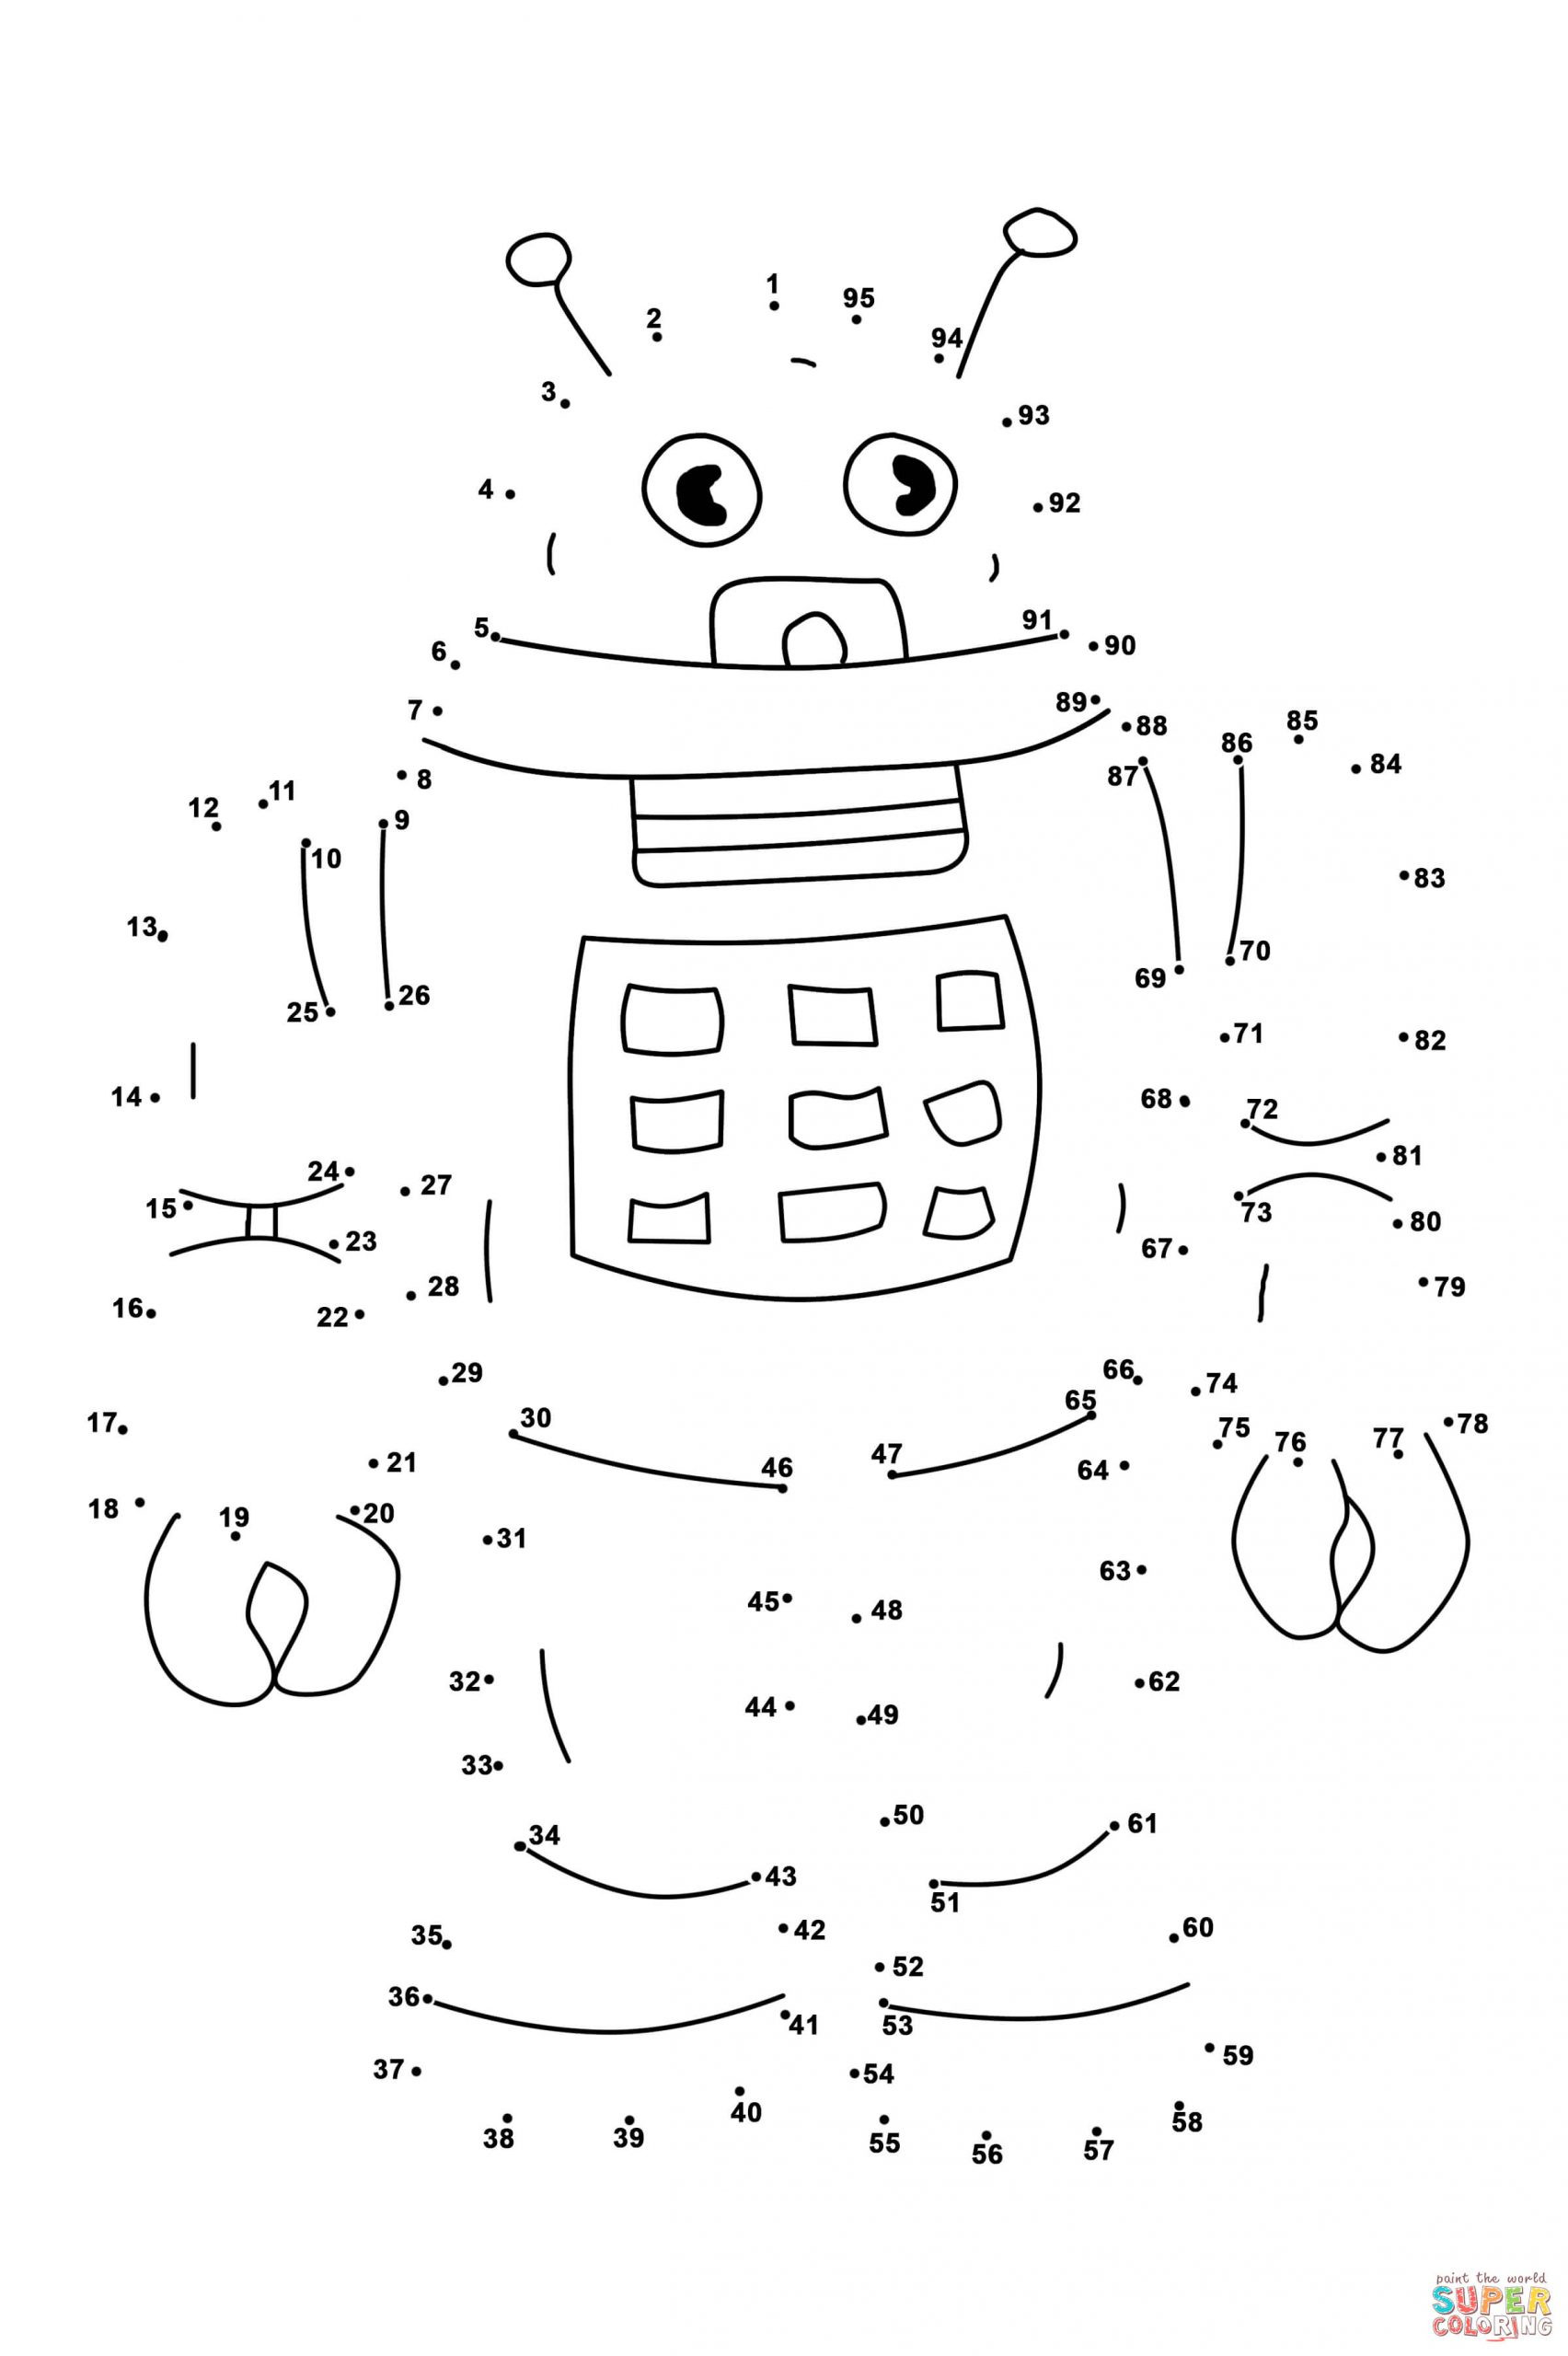 Christmas Connect the Dots Printable Robot Dot to Connect the Dots Worksheets Free Coloring Pages